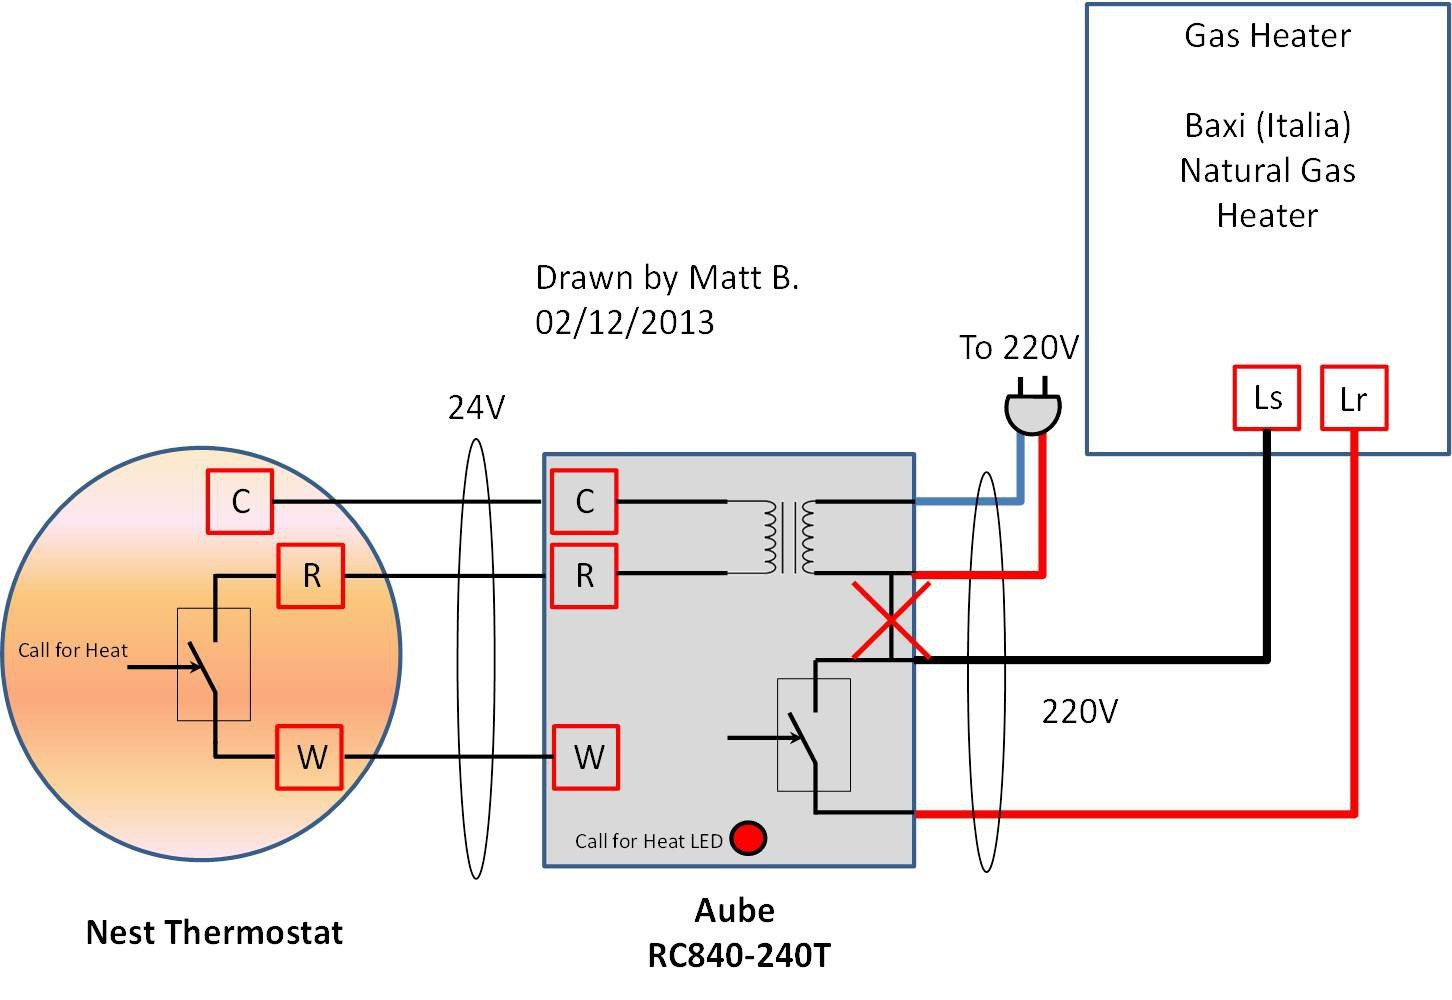 Wiring Diagram For Nest Thermostat Uk | Wiring Diagram - Nest Thermostat Wiring Diagram Uk